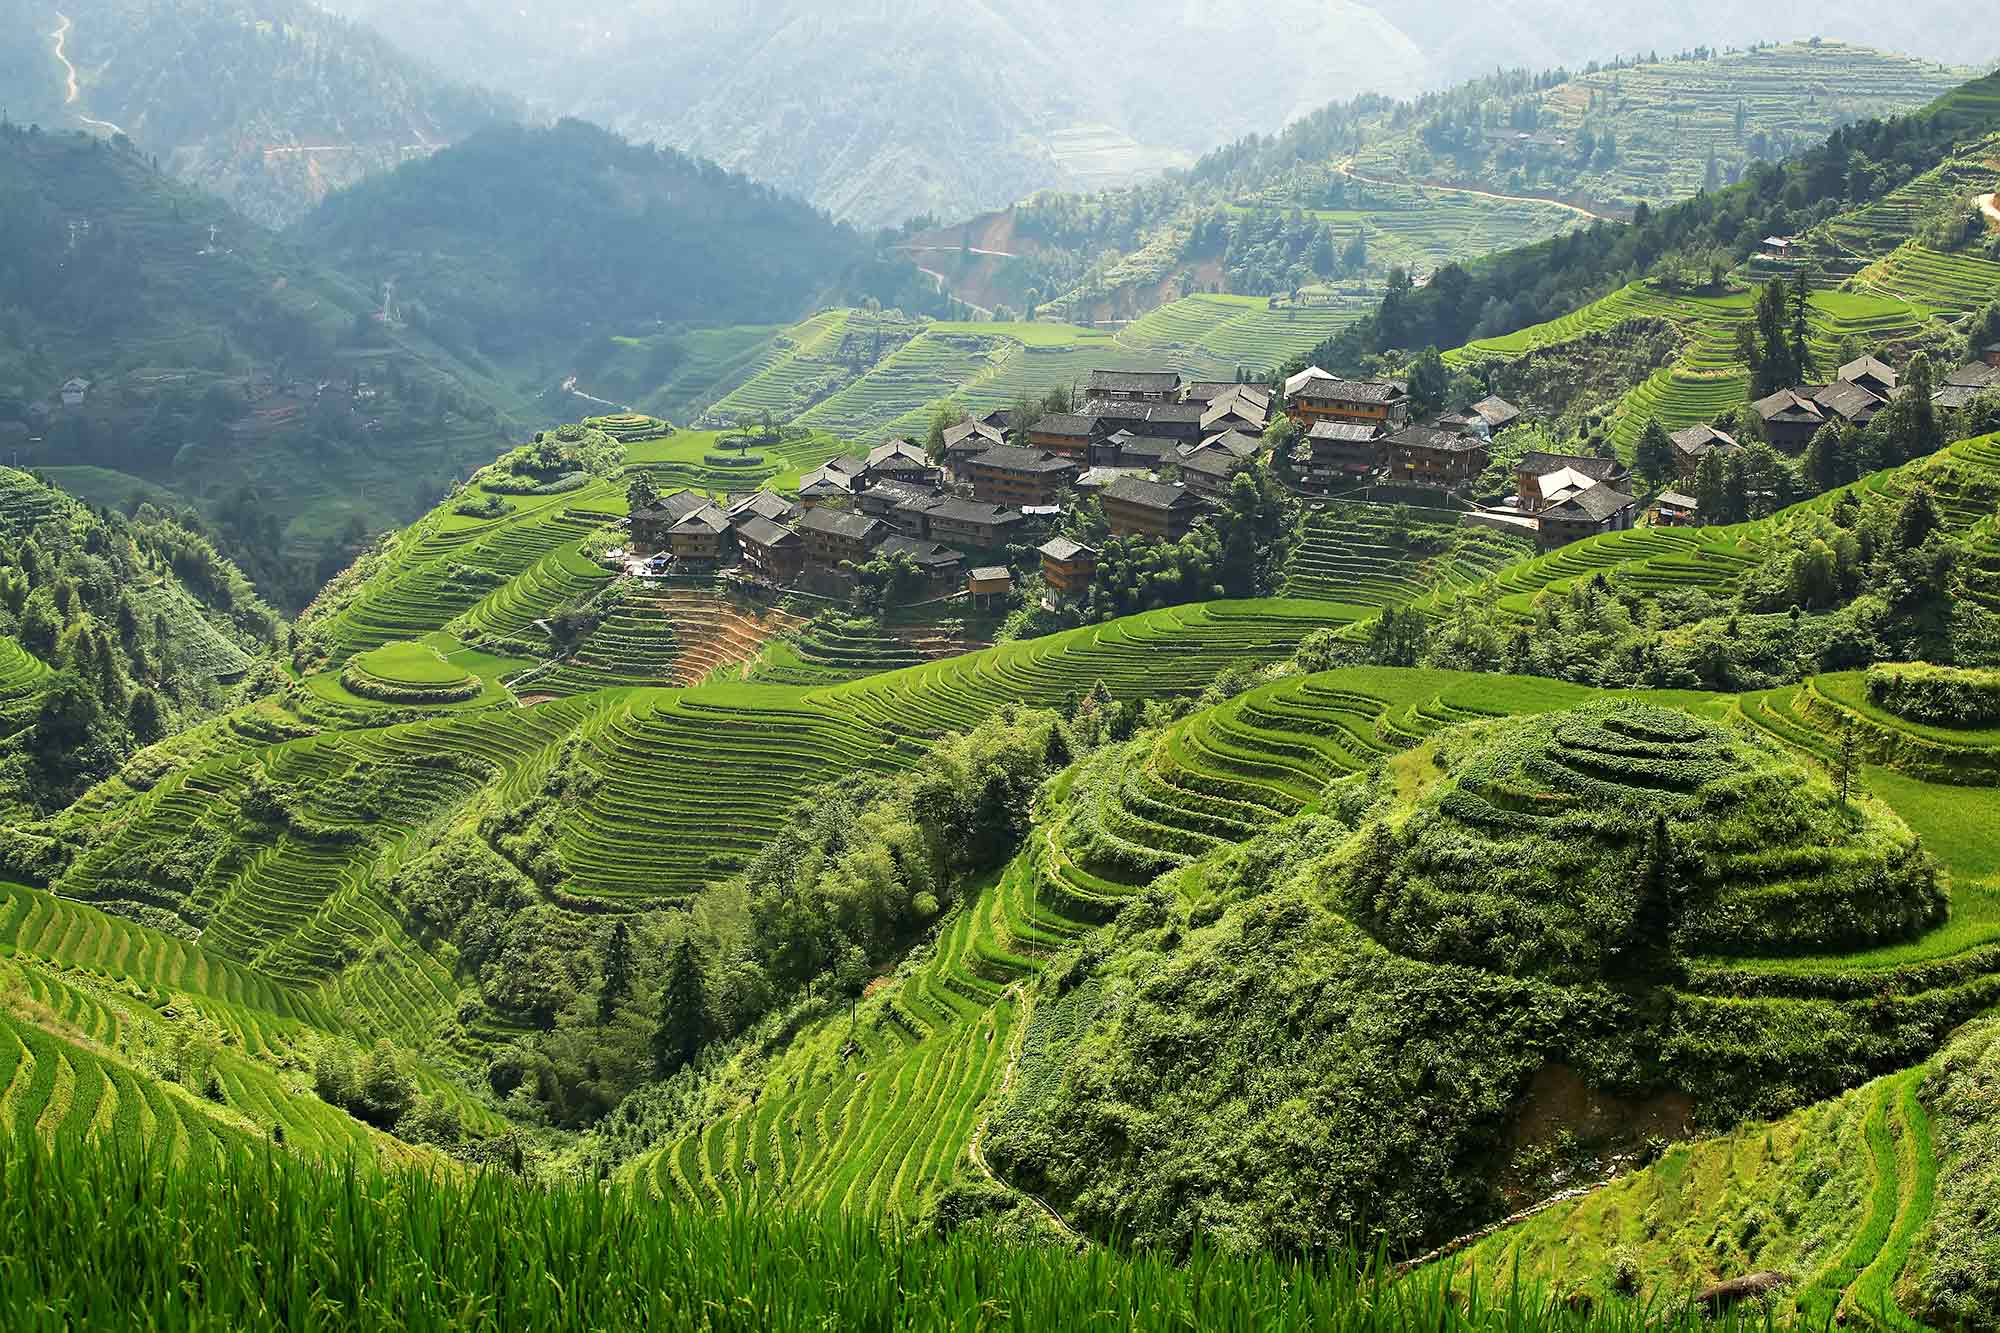 dazhai-village-longji-rice-terraces-longshend-china-2